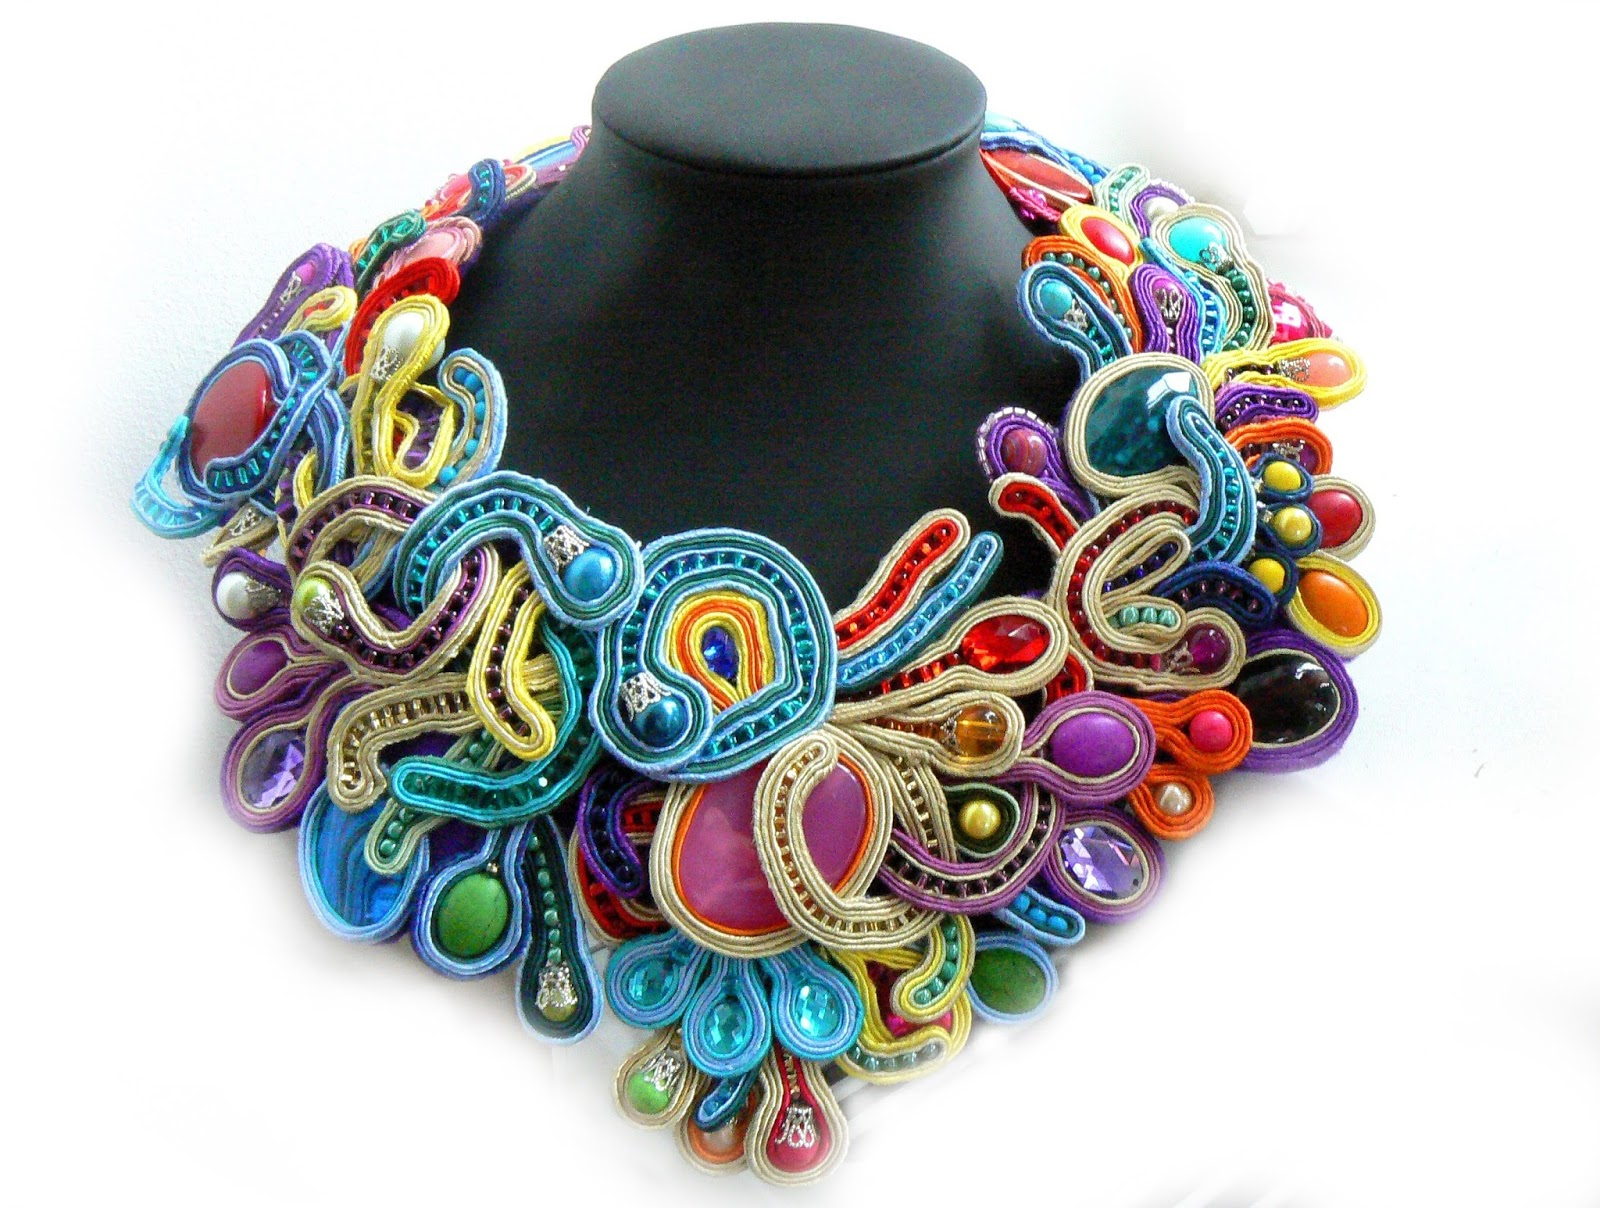 unicas fashions style file what makes soutache jewelry so